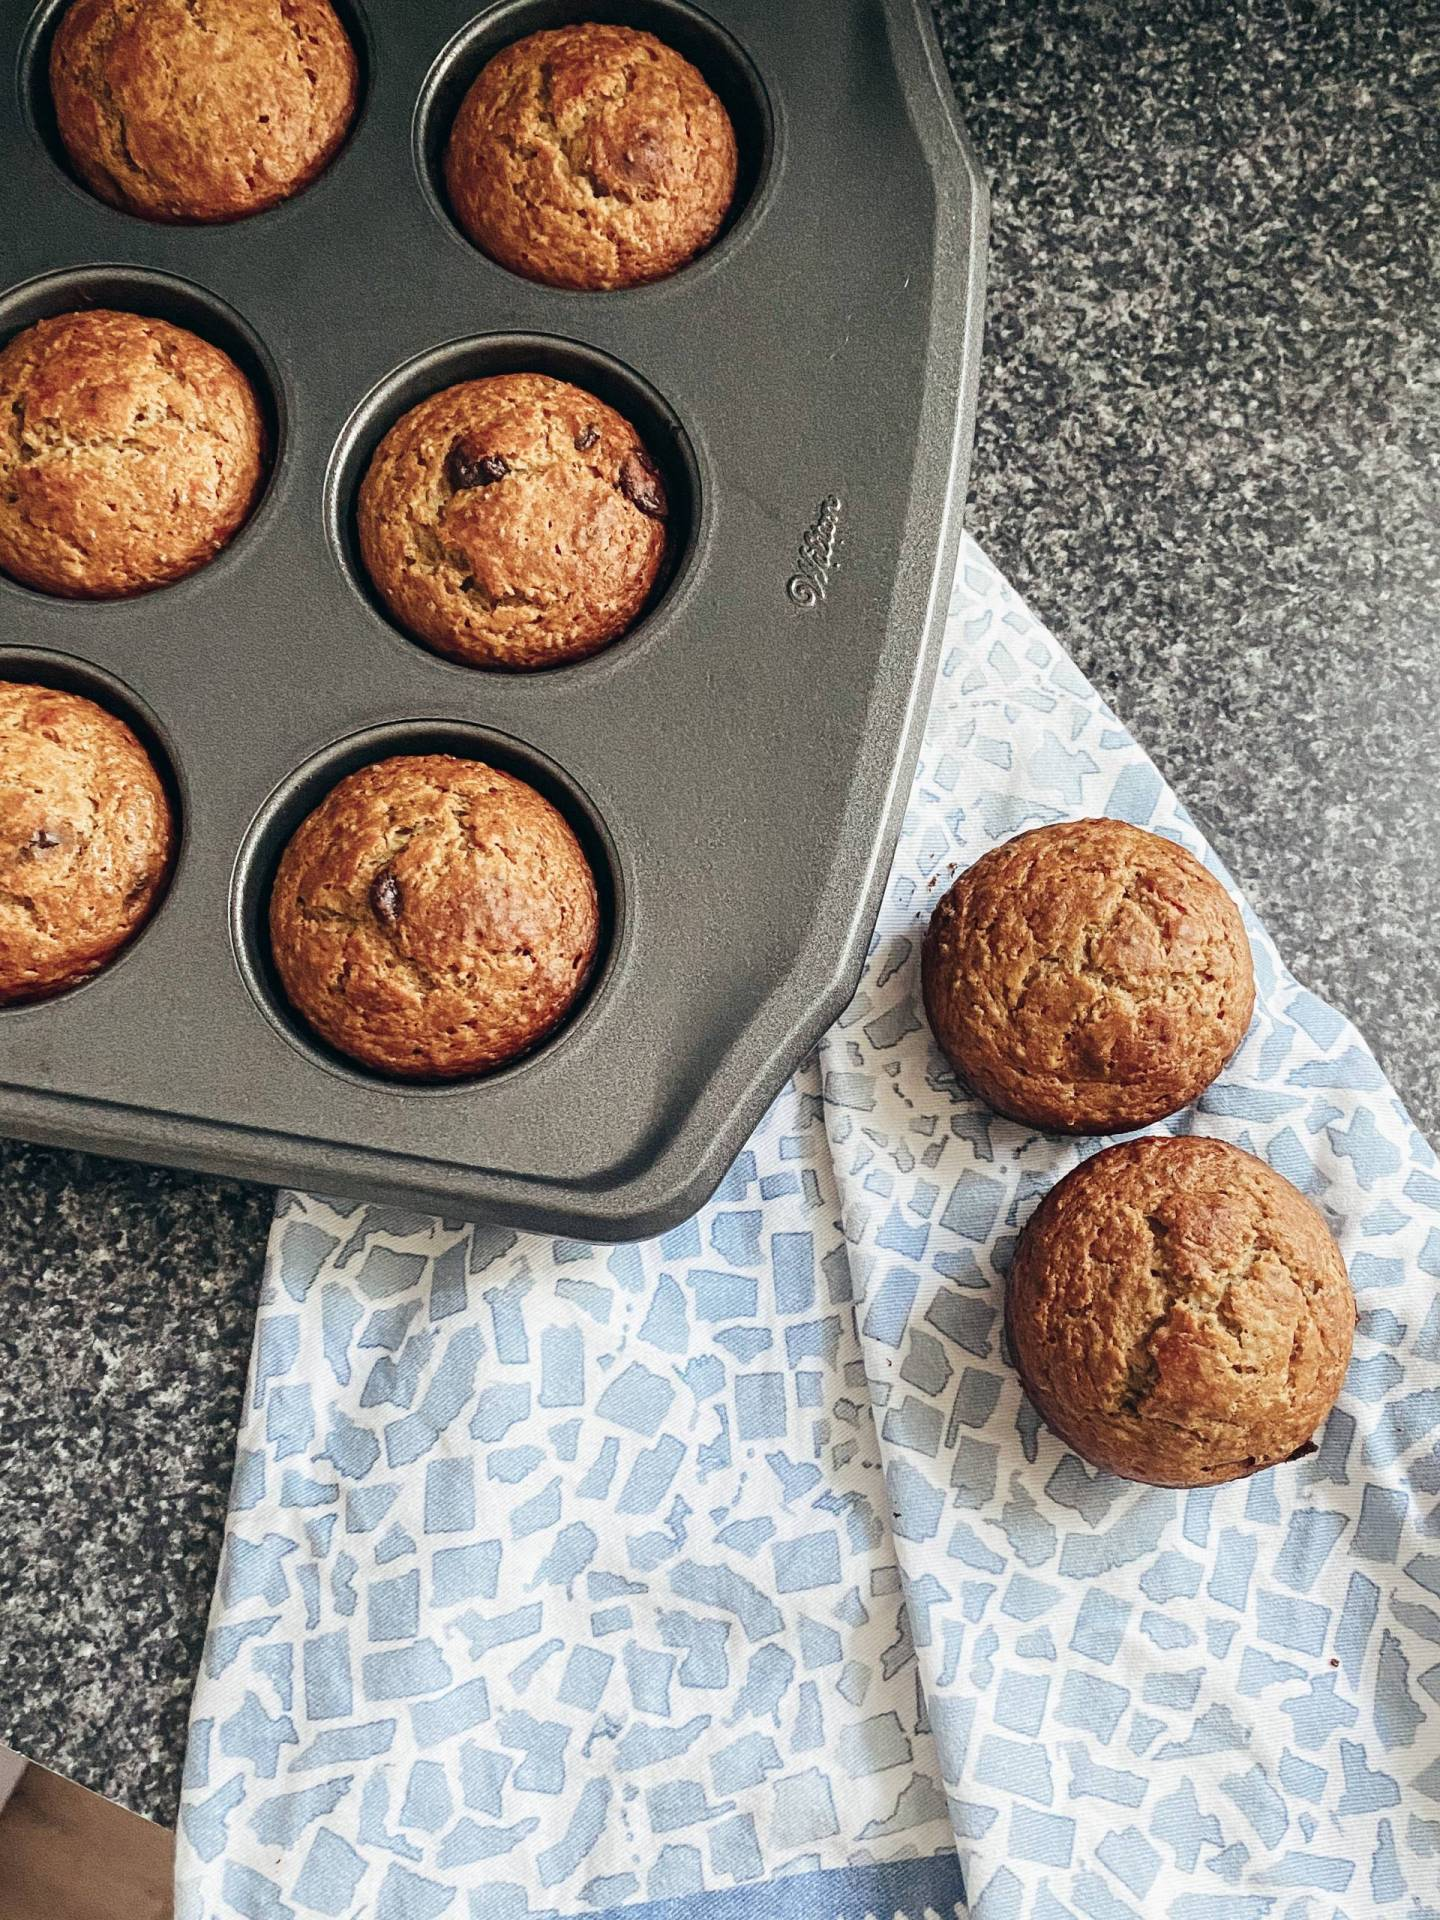 These healthy banana chocolate chip muffins are free of refined sugar and butter and packed with protein and fiber, think collagen peptides, chia seeds, and ground flax seeds! The perfect breakfast, snack, or dessert!